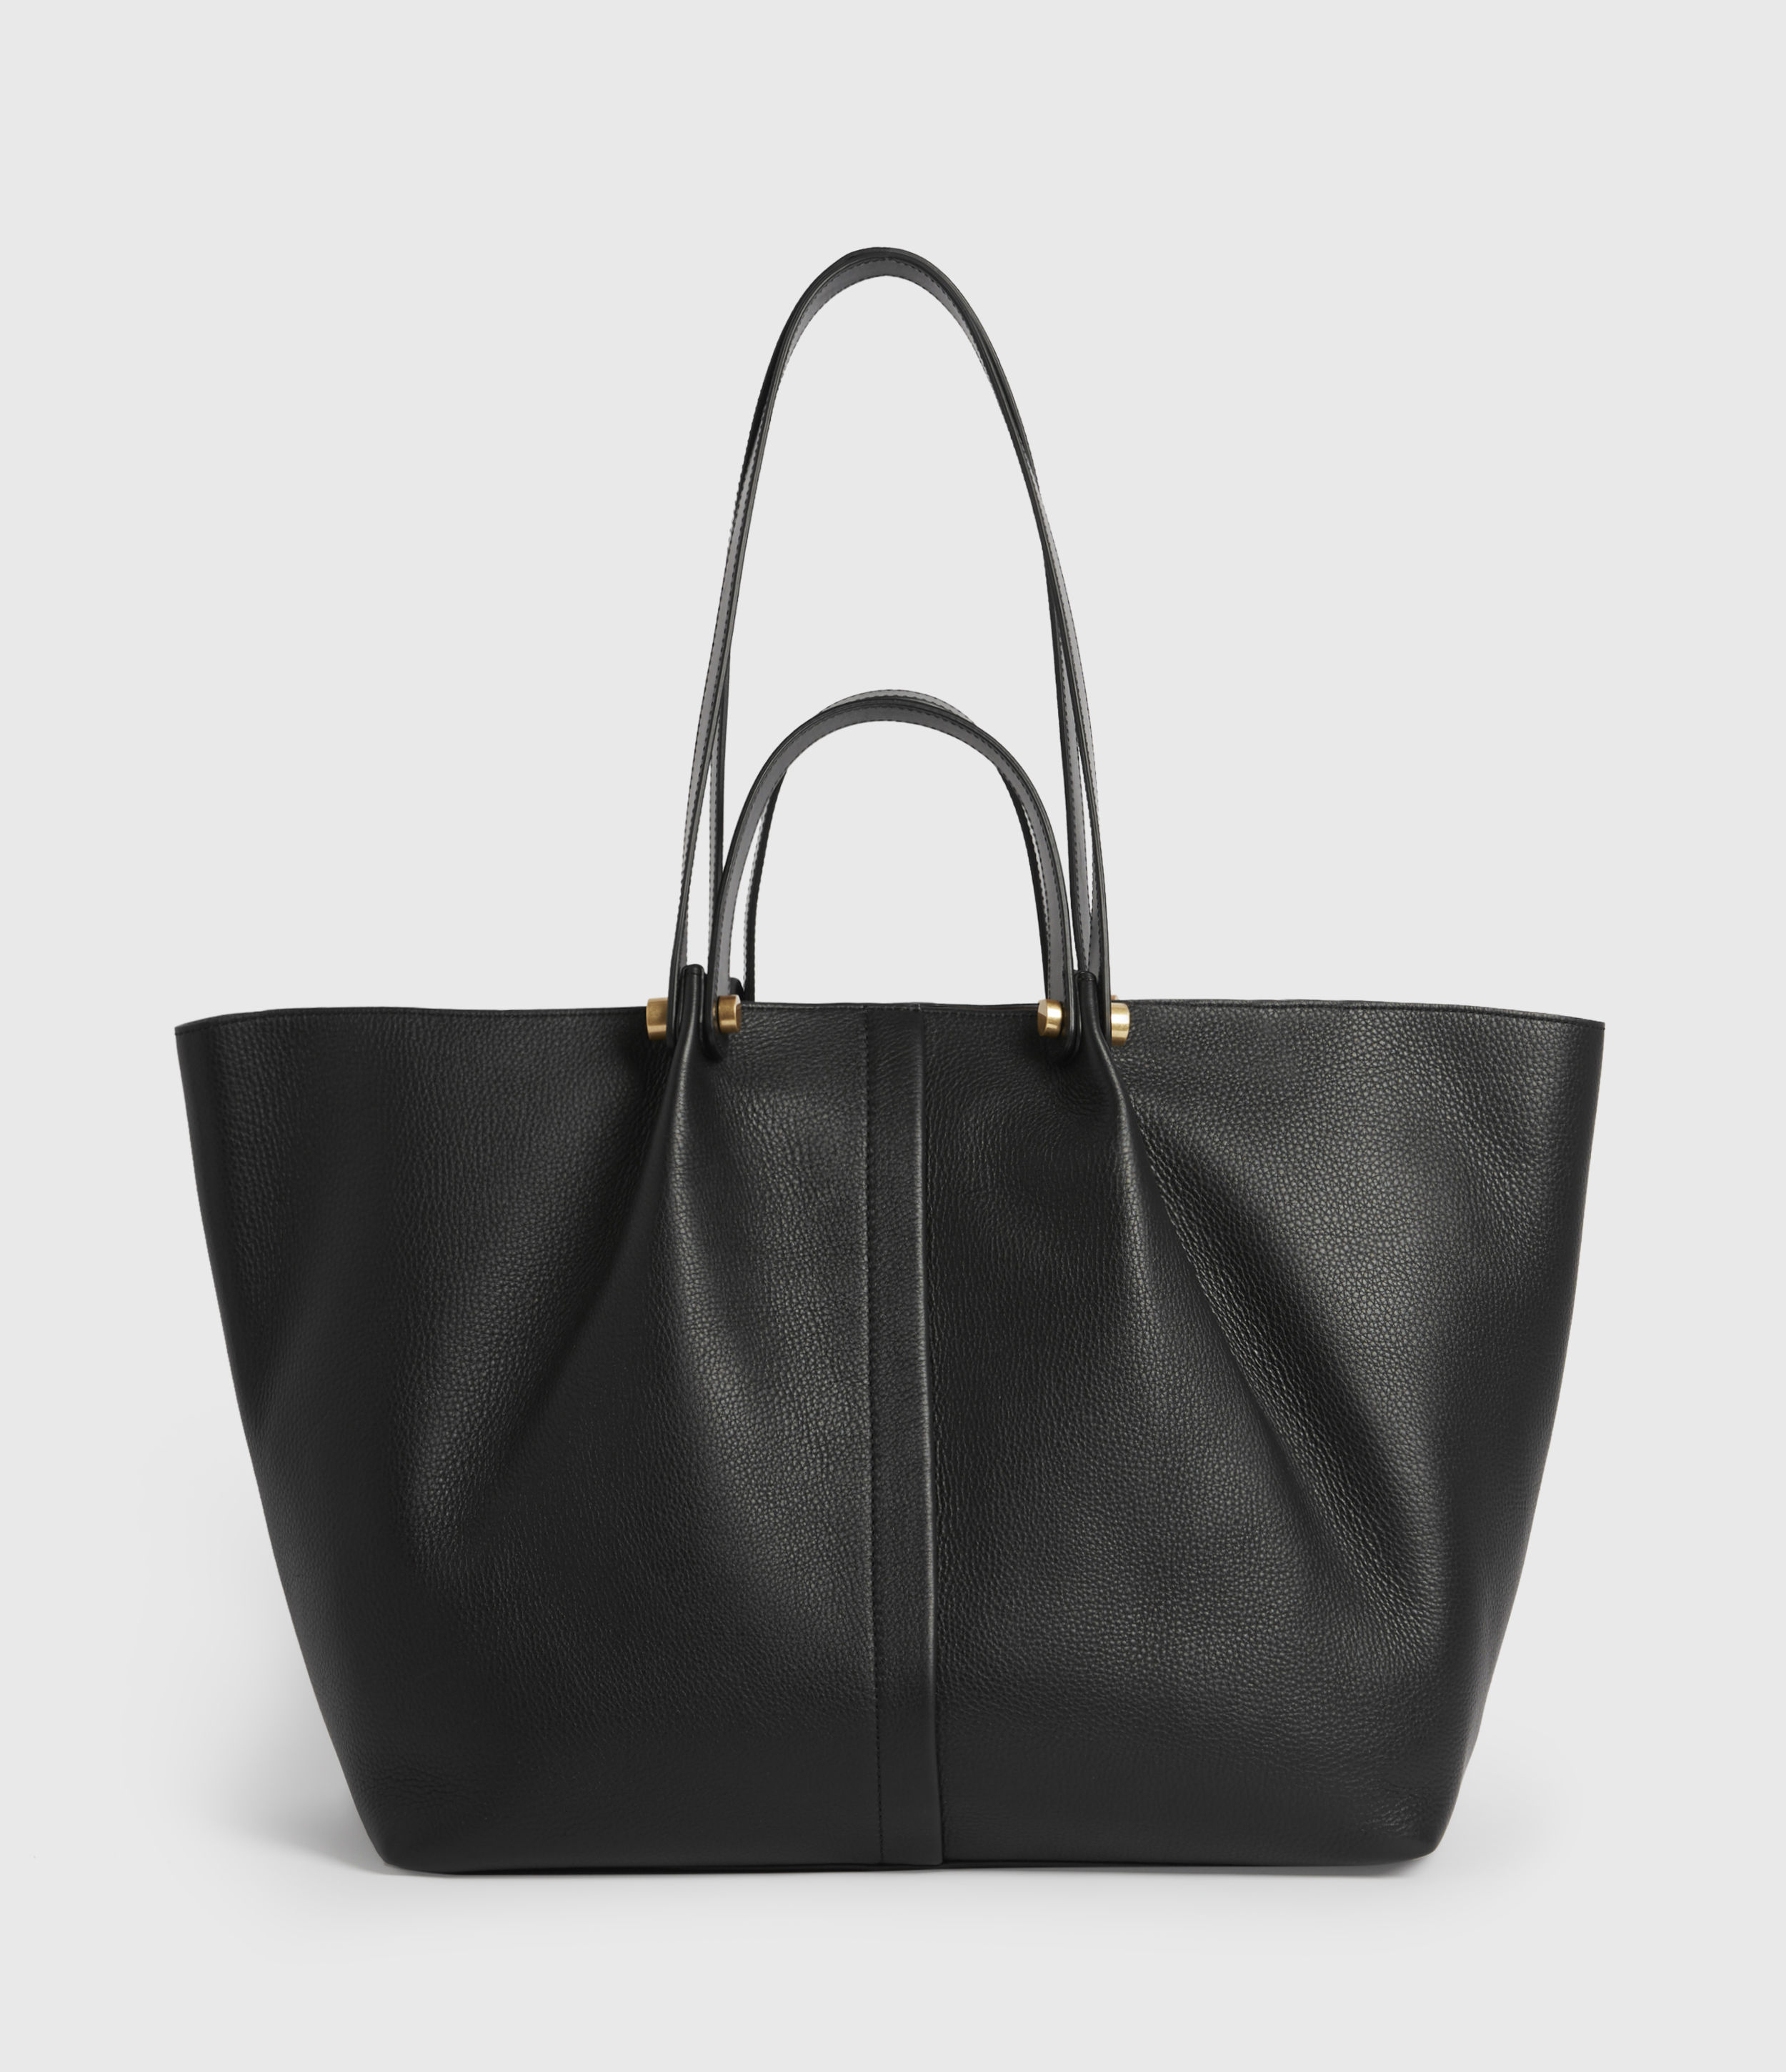 AllSaints Women's Leather Lightweight Allington East West Tote Bag, Black